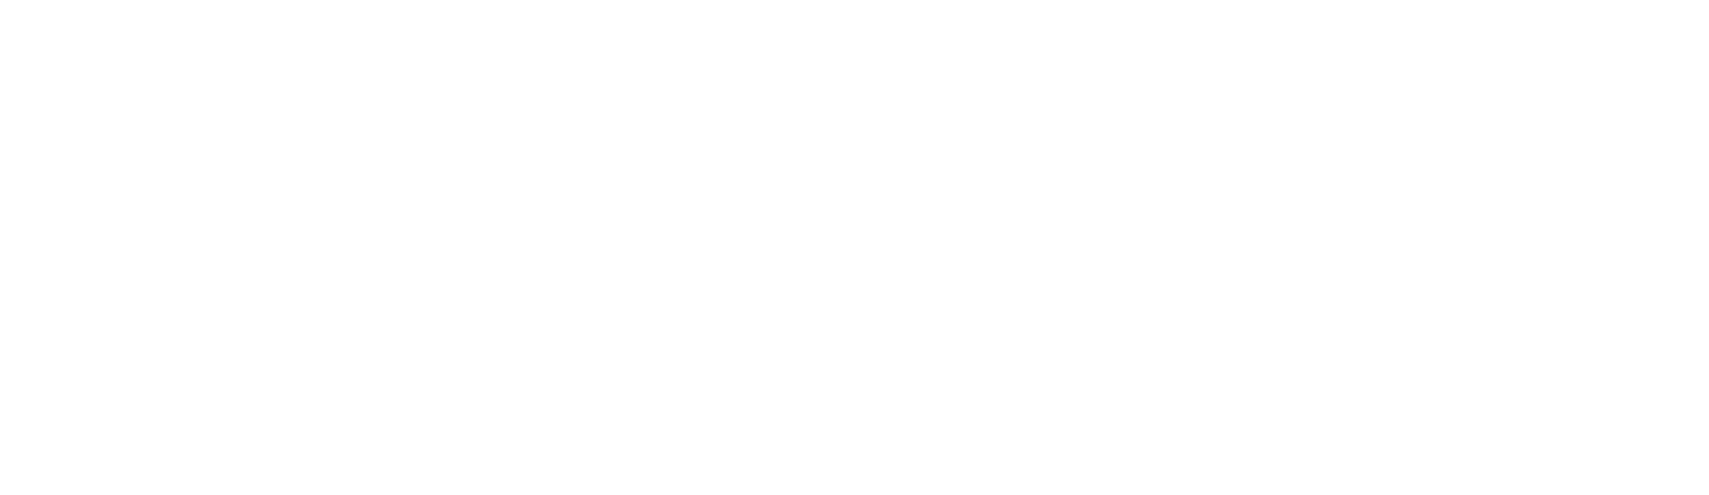 Chartwell-Travel-Black